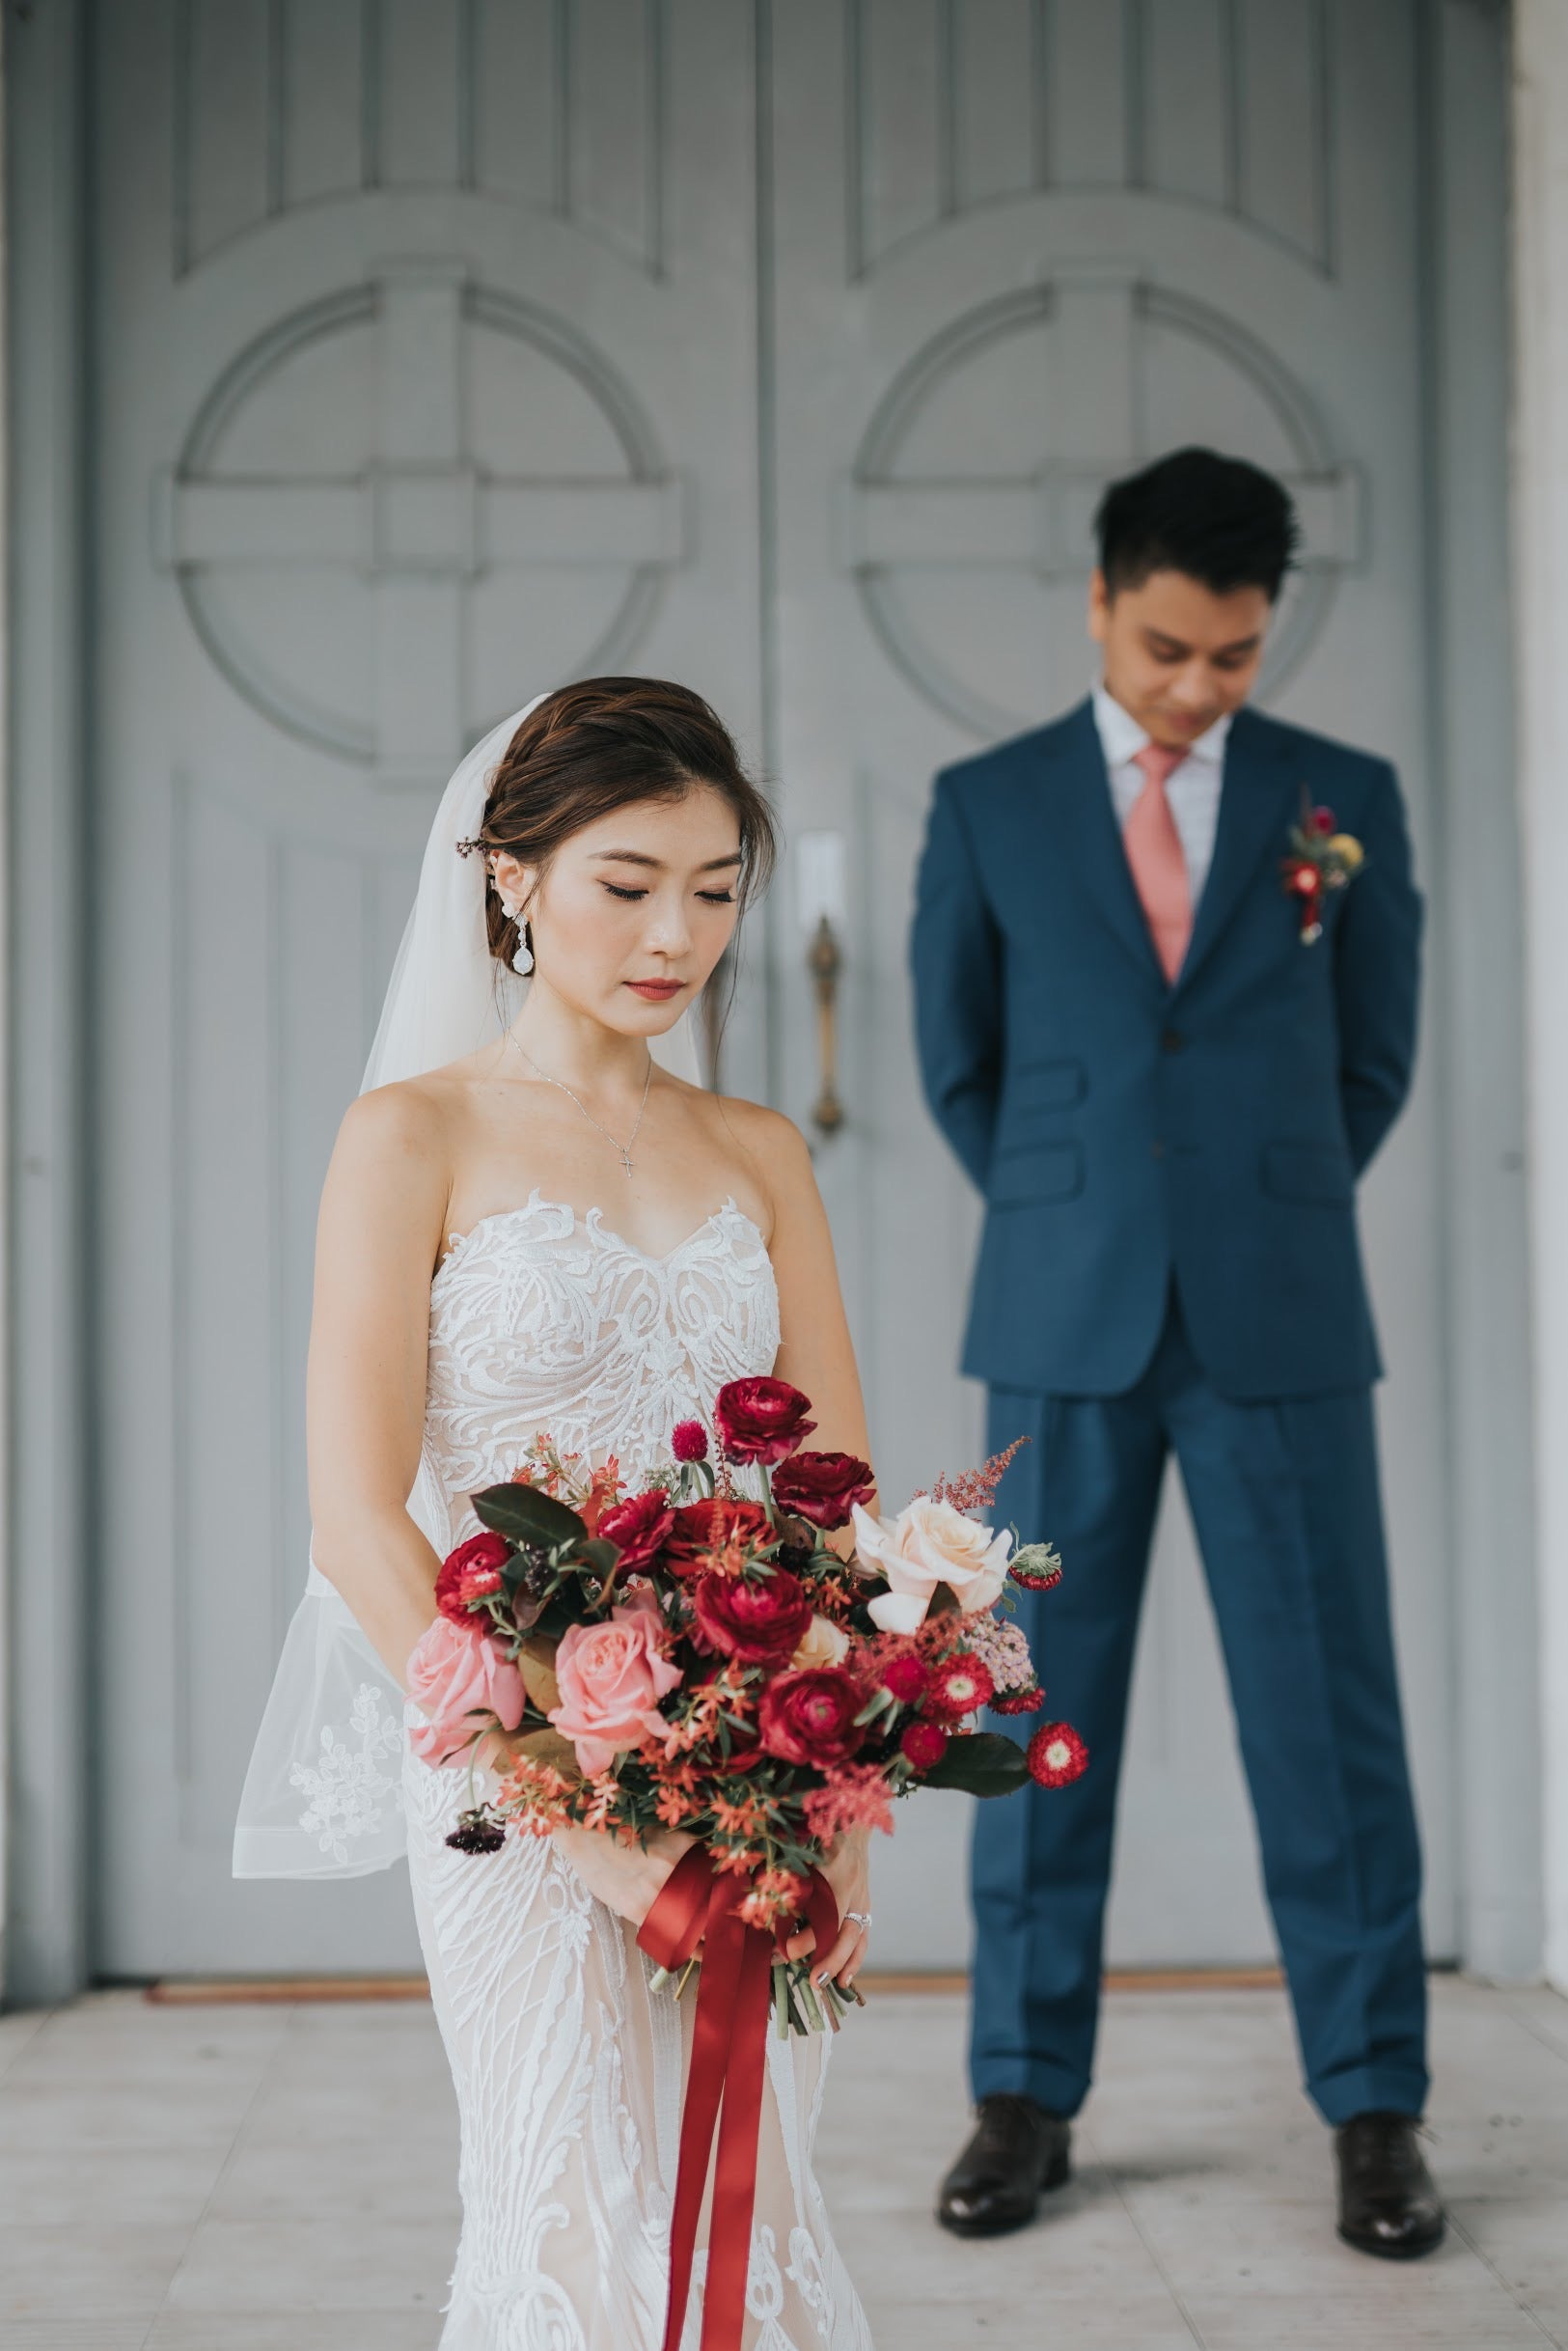 Wedding photoshoot at church venue with bride in foreground wearing a wedding gown with intricate details and holding a rustic red wedding bouquet